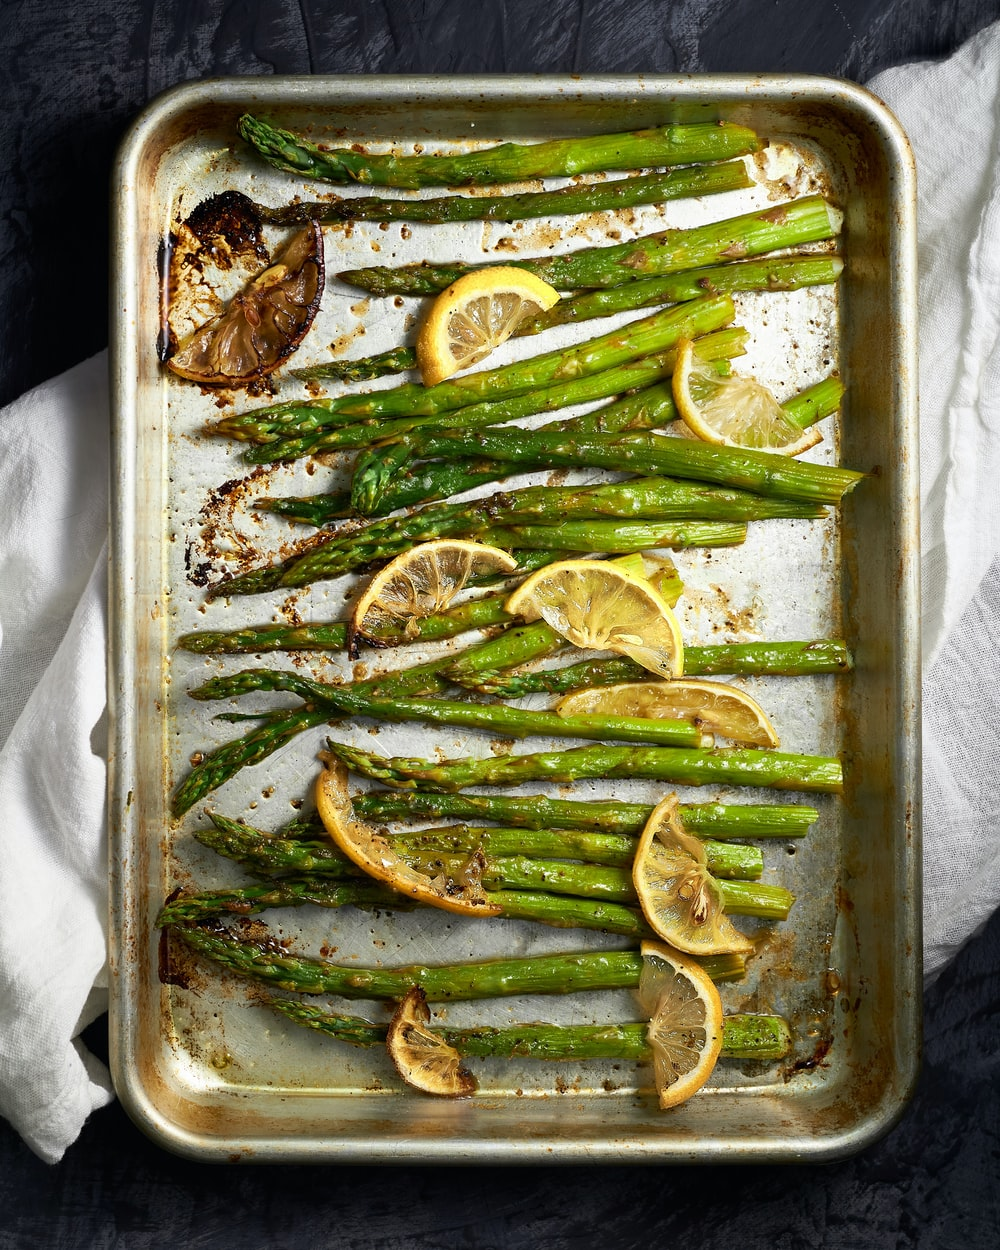 green vegetable on stainless steel tray